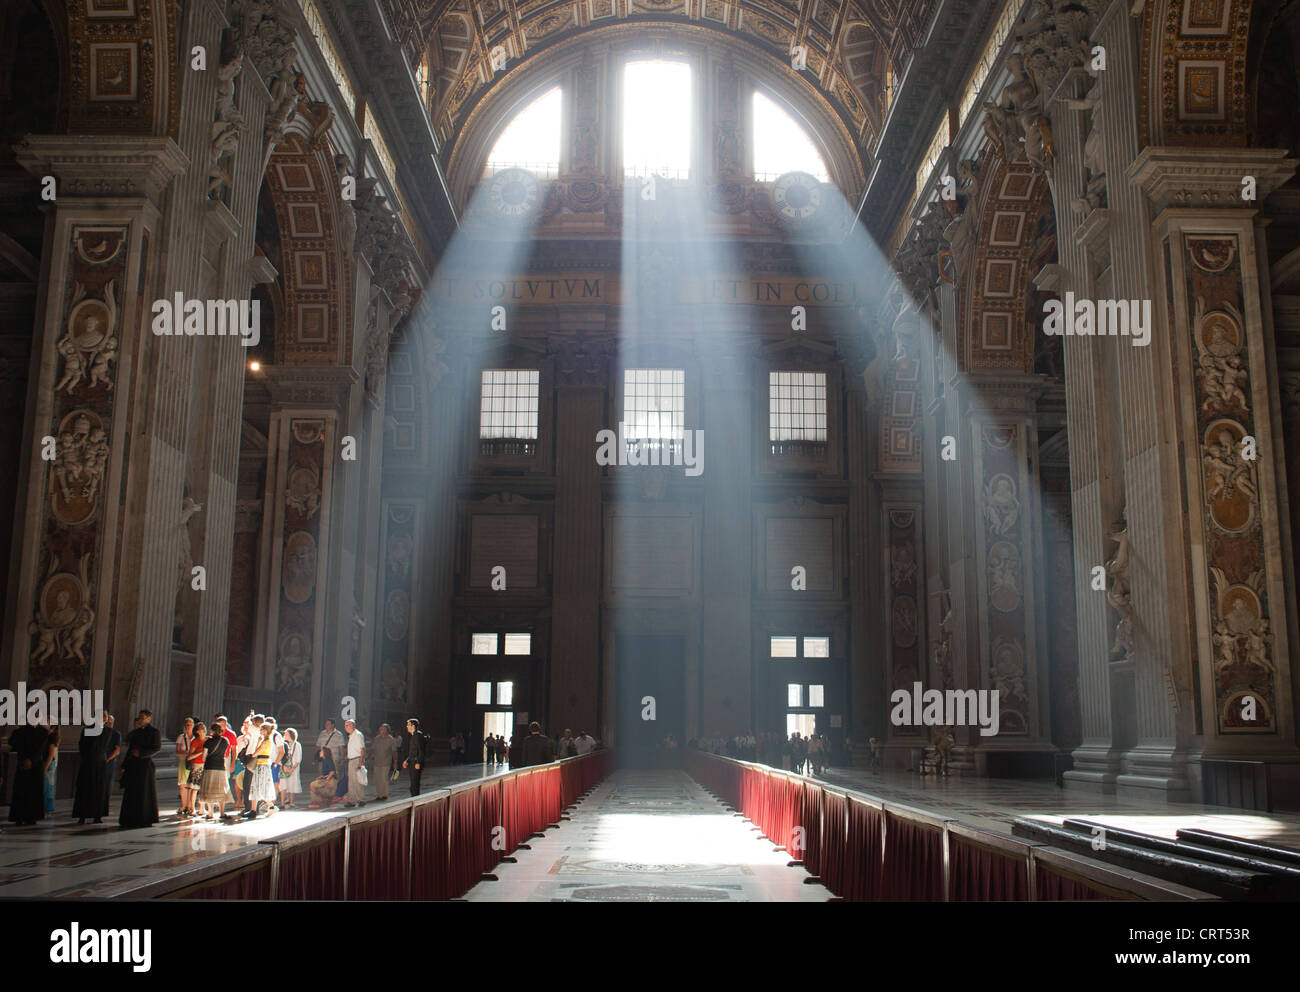 Crepuscular rays are seen in St. Peter's Basilica in the Vatican City. - Stock Image